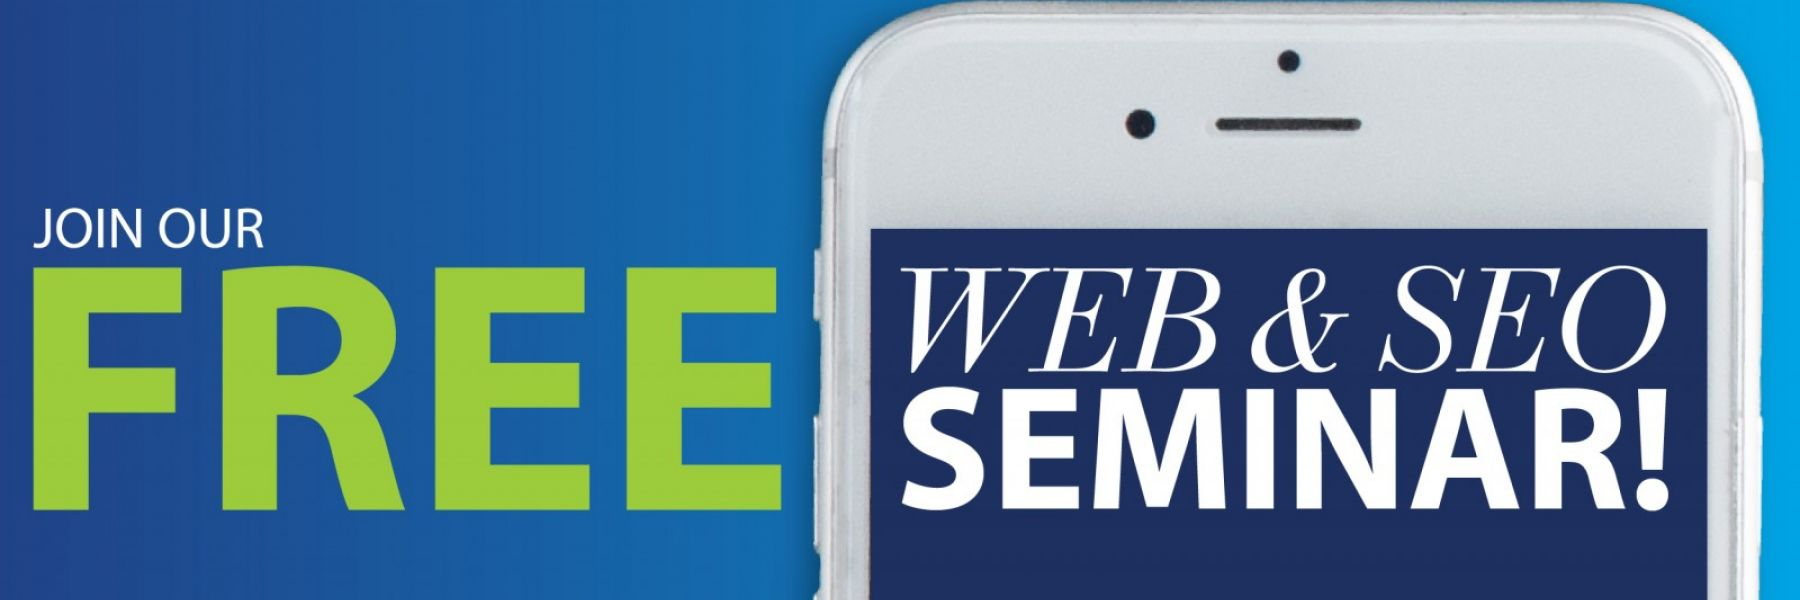 graphic of a cell phone with the words Free Web & SEO Seminar on top